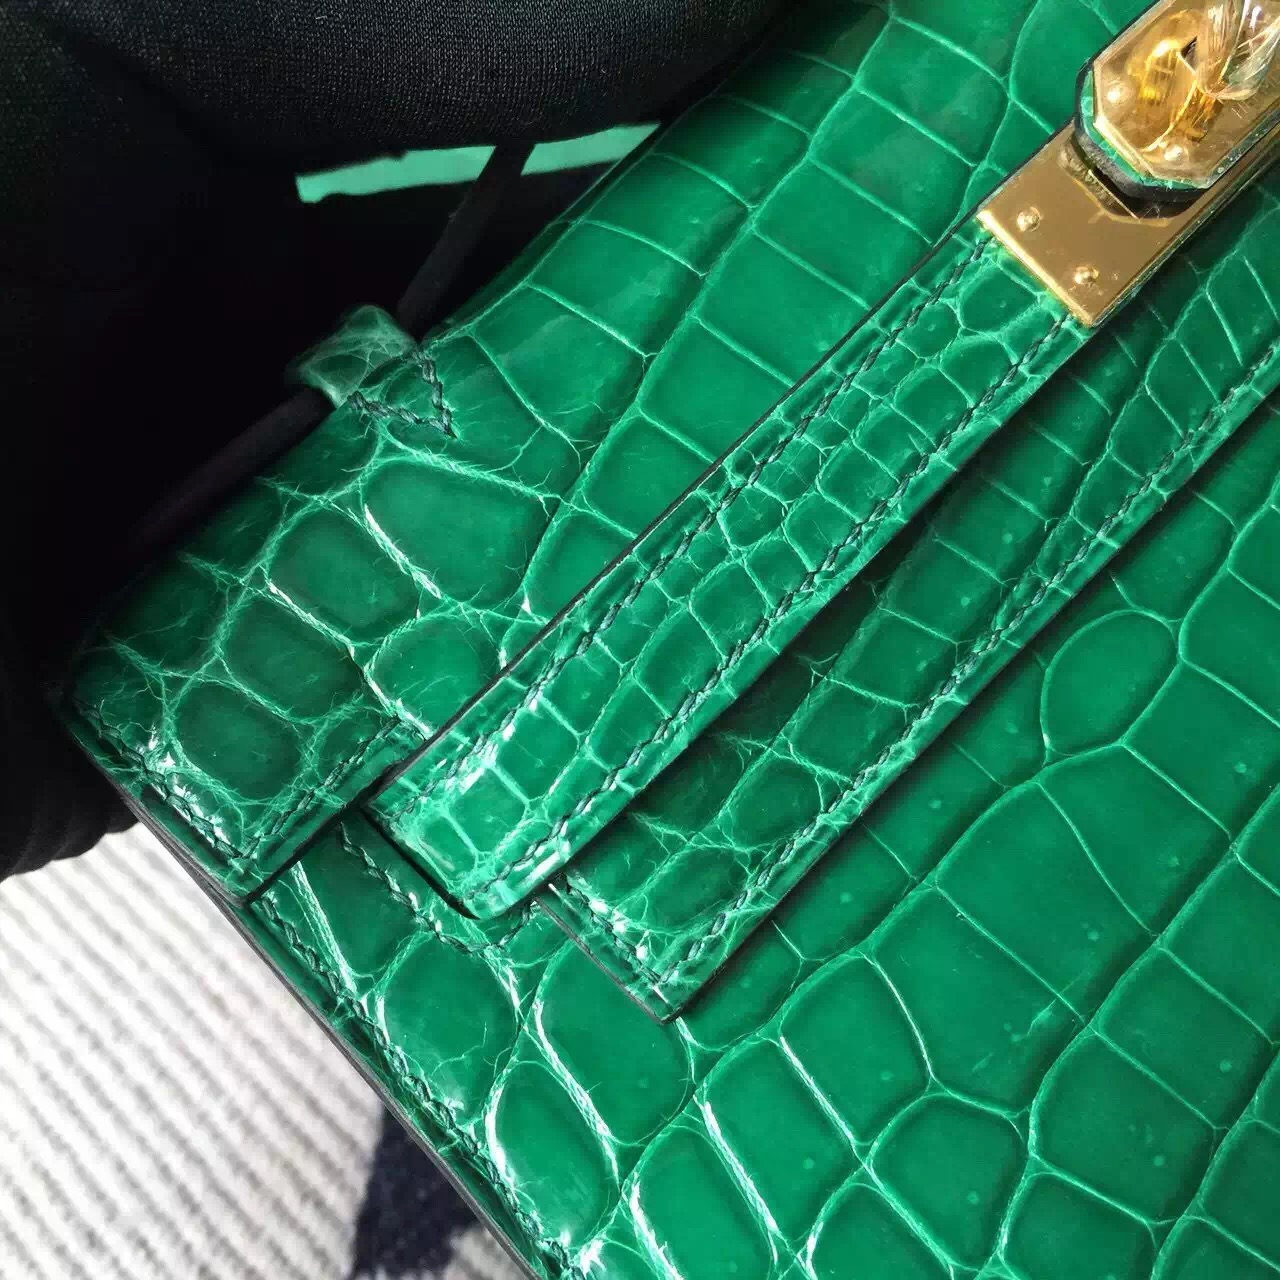 Hermes 6Q Emerald Green Crocodile Shiny Leather Minikelly Clutch Bag22cm